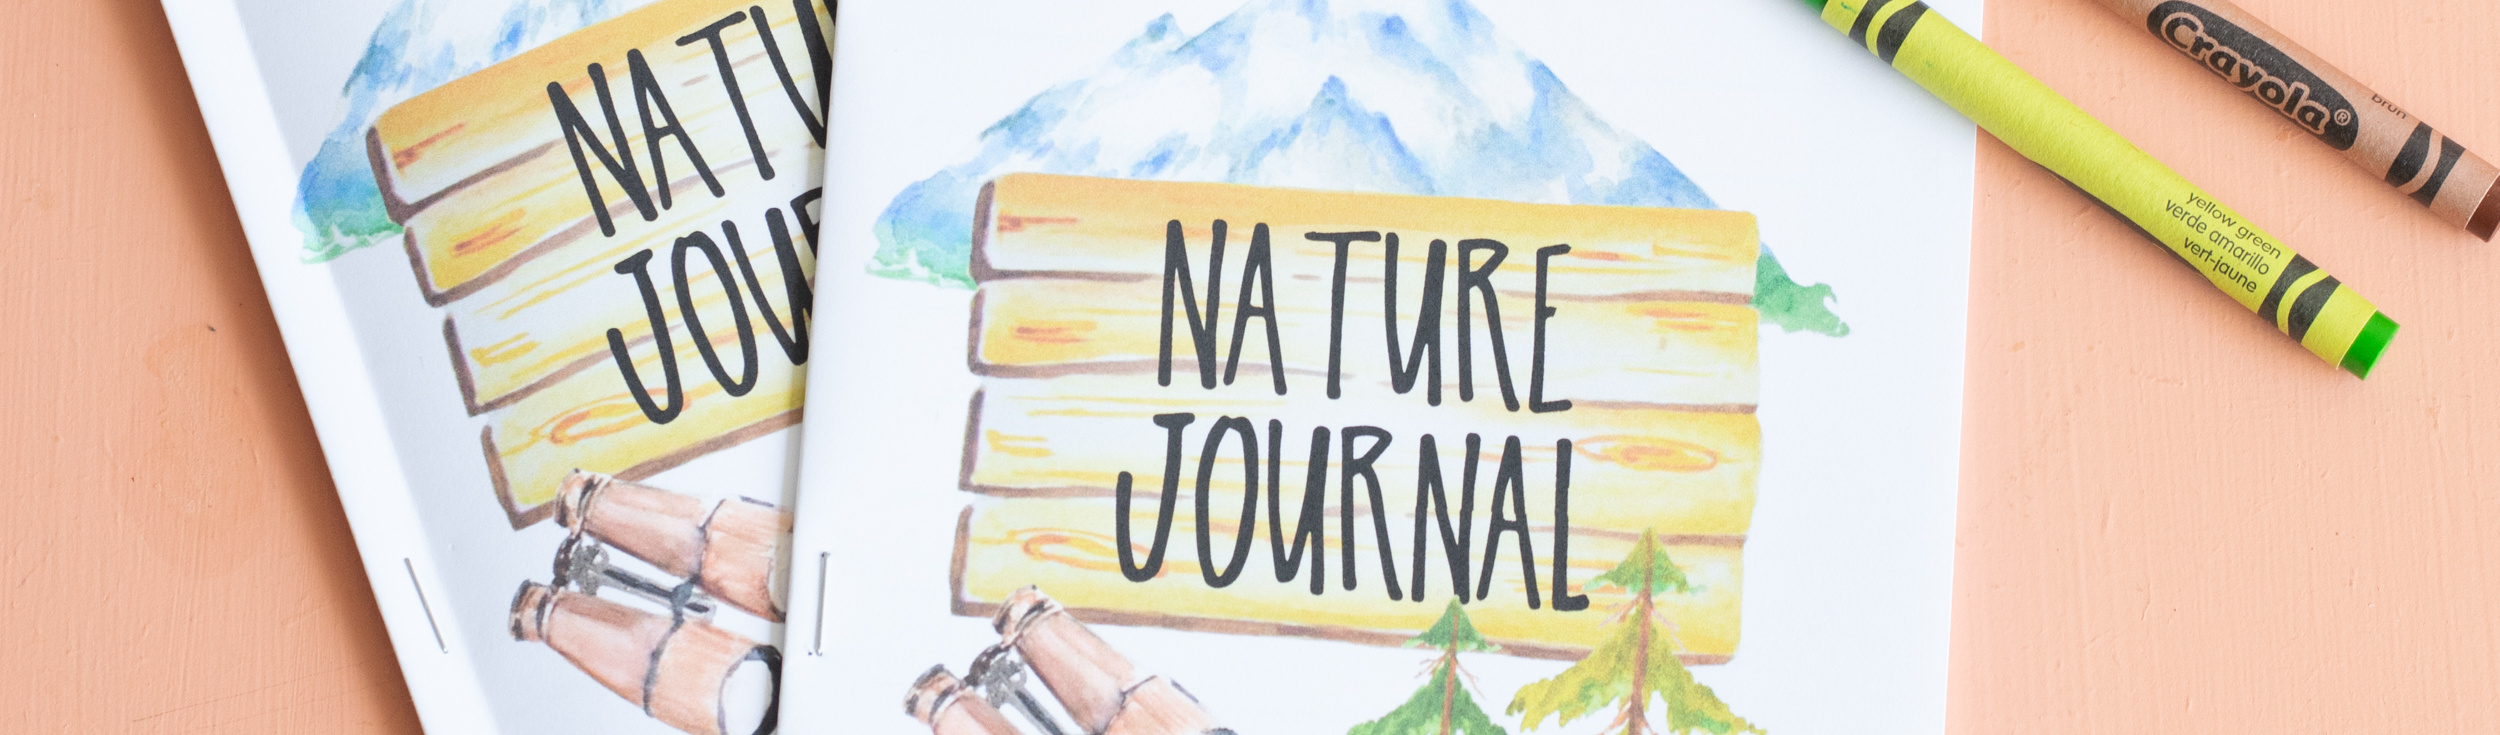 CE Nature Journal